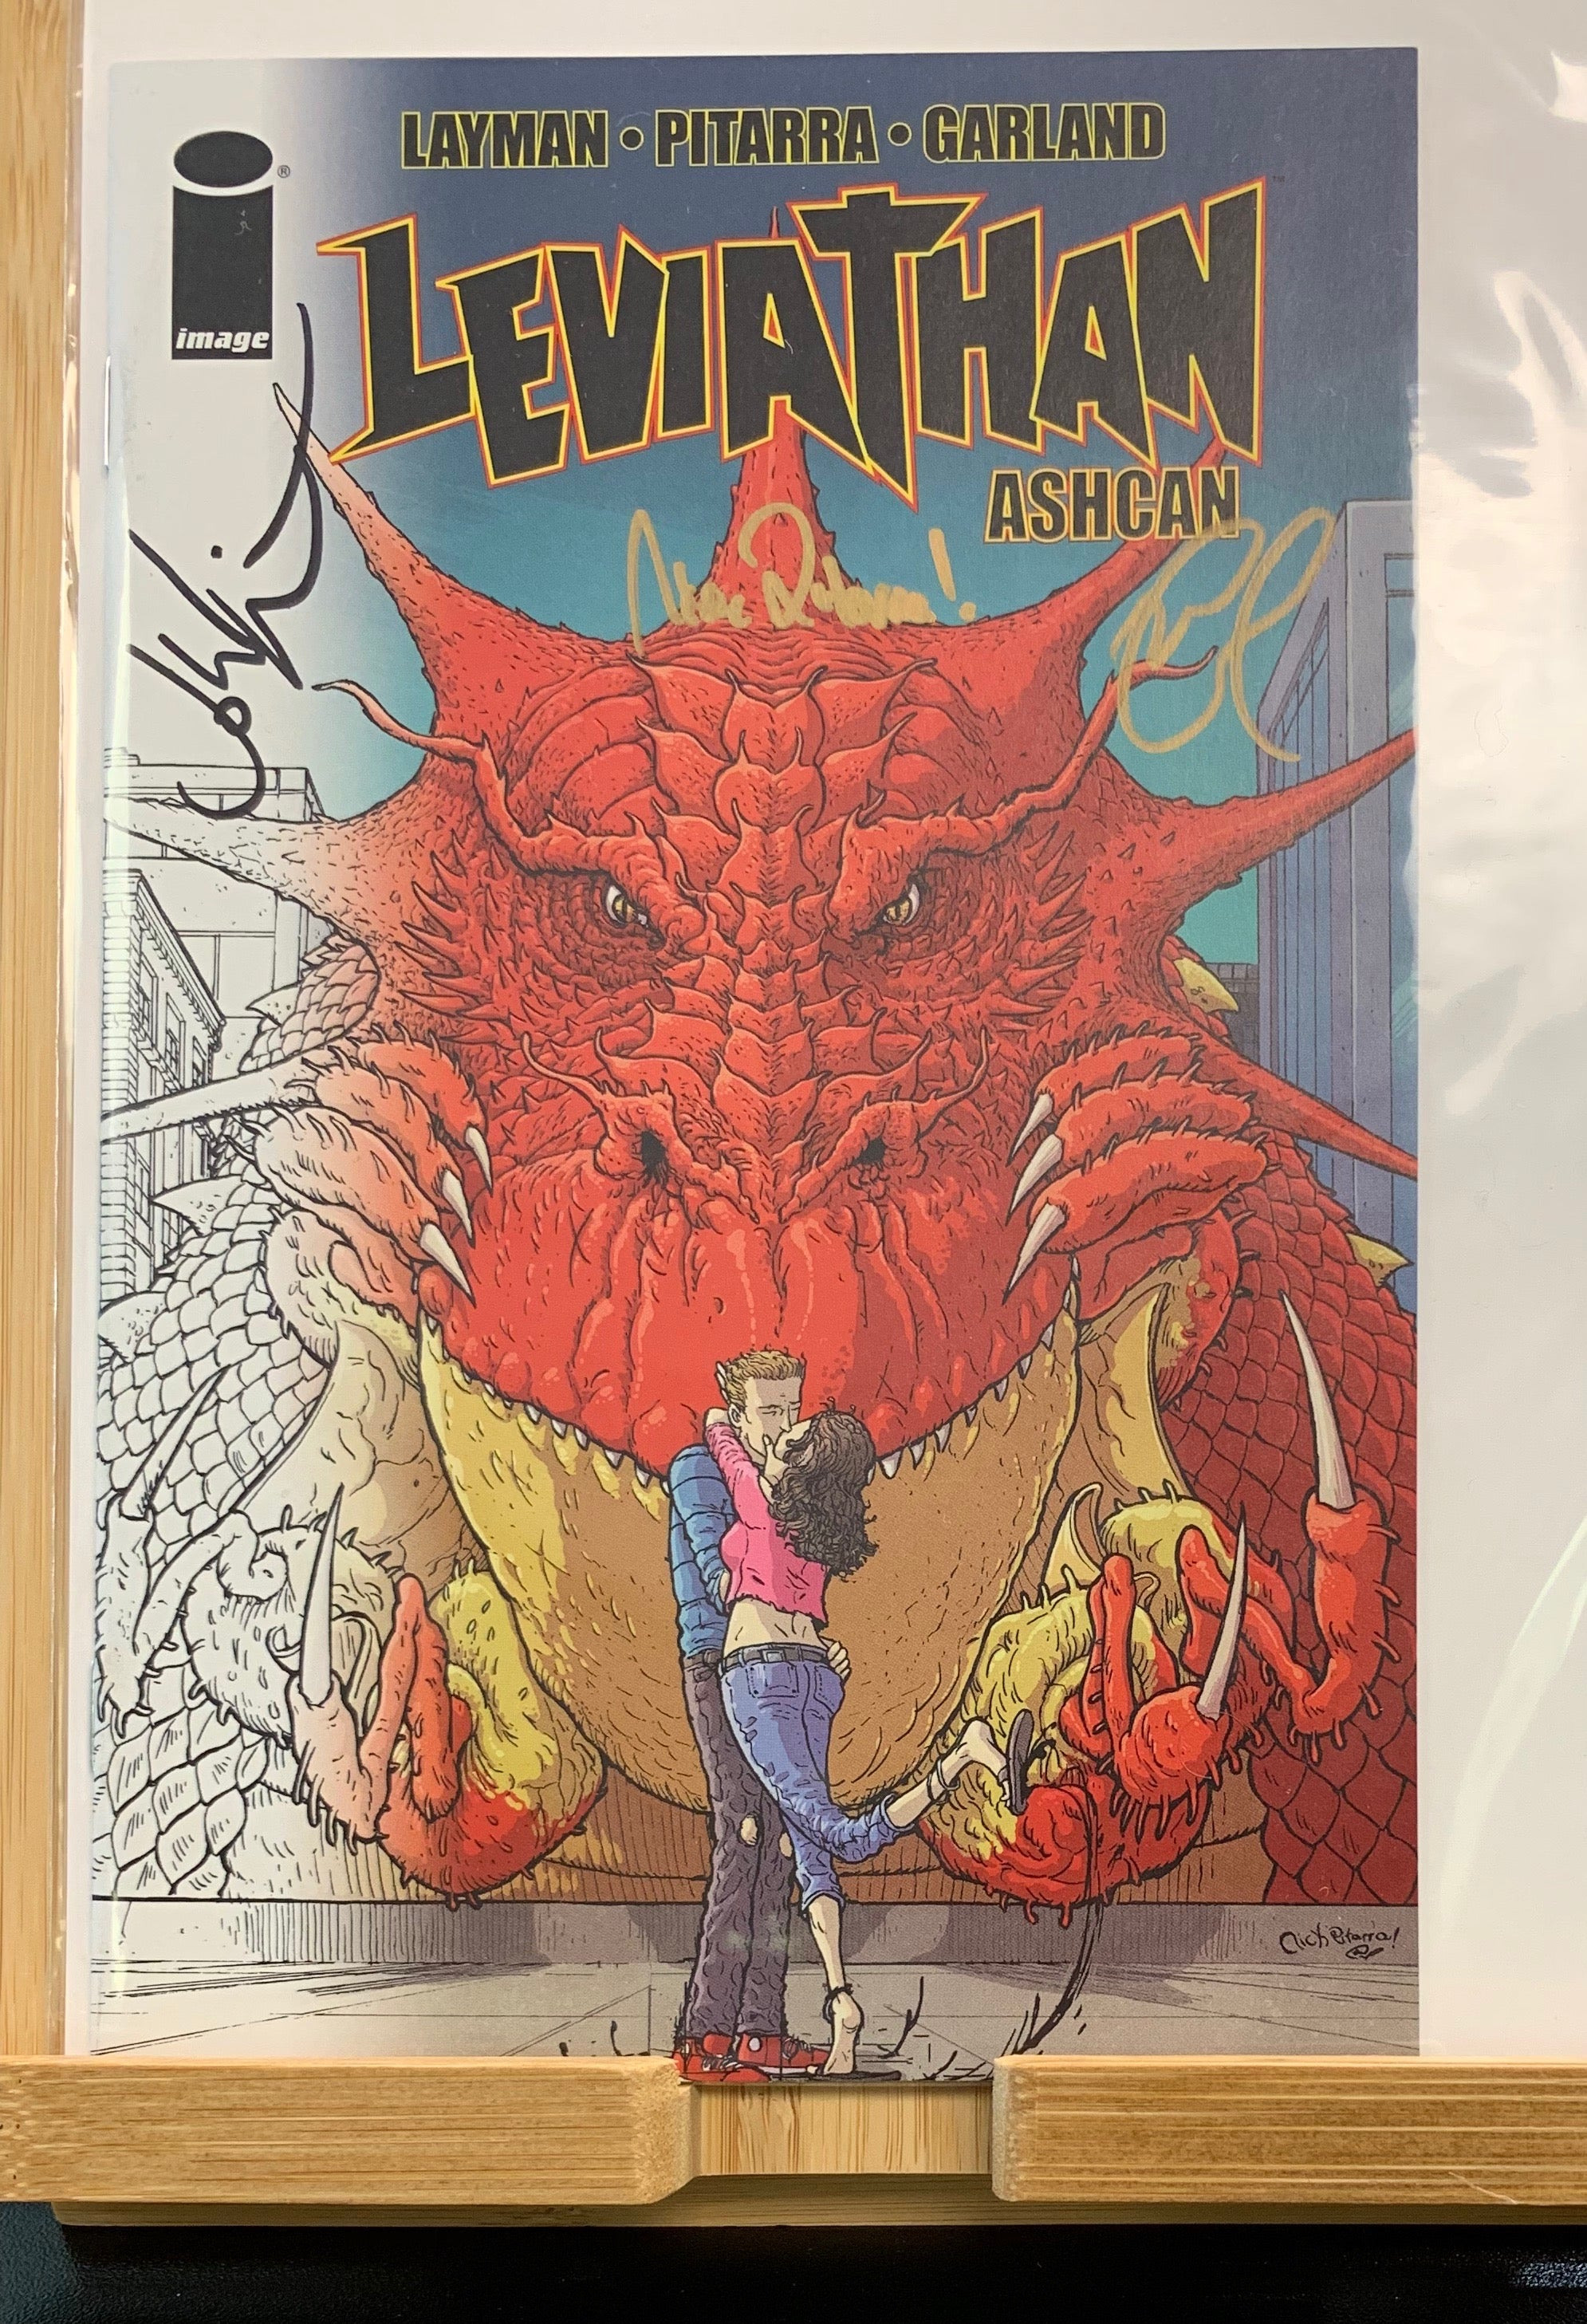 Leviathan #1 C2E2 Retailer Exclusive Ashcan Signed by Layman Pitarra Garland